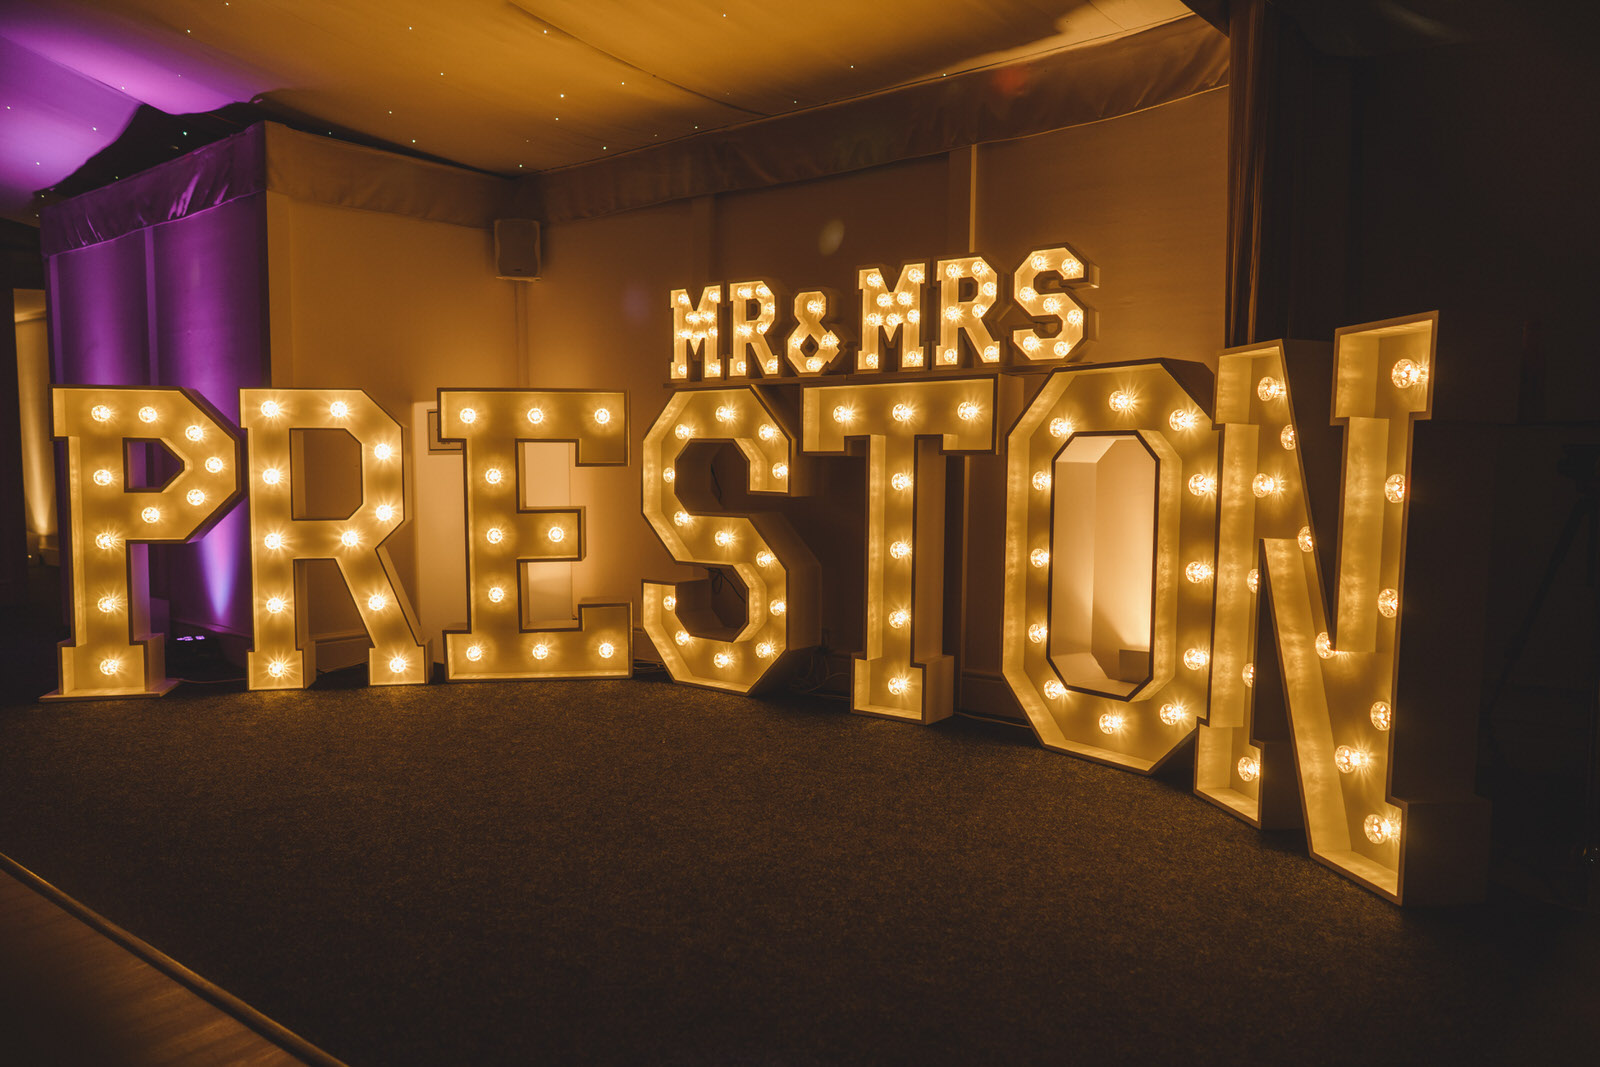 the bride and grooms names lit up in lights at their evening reception